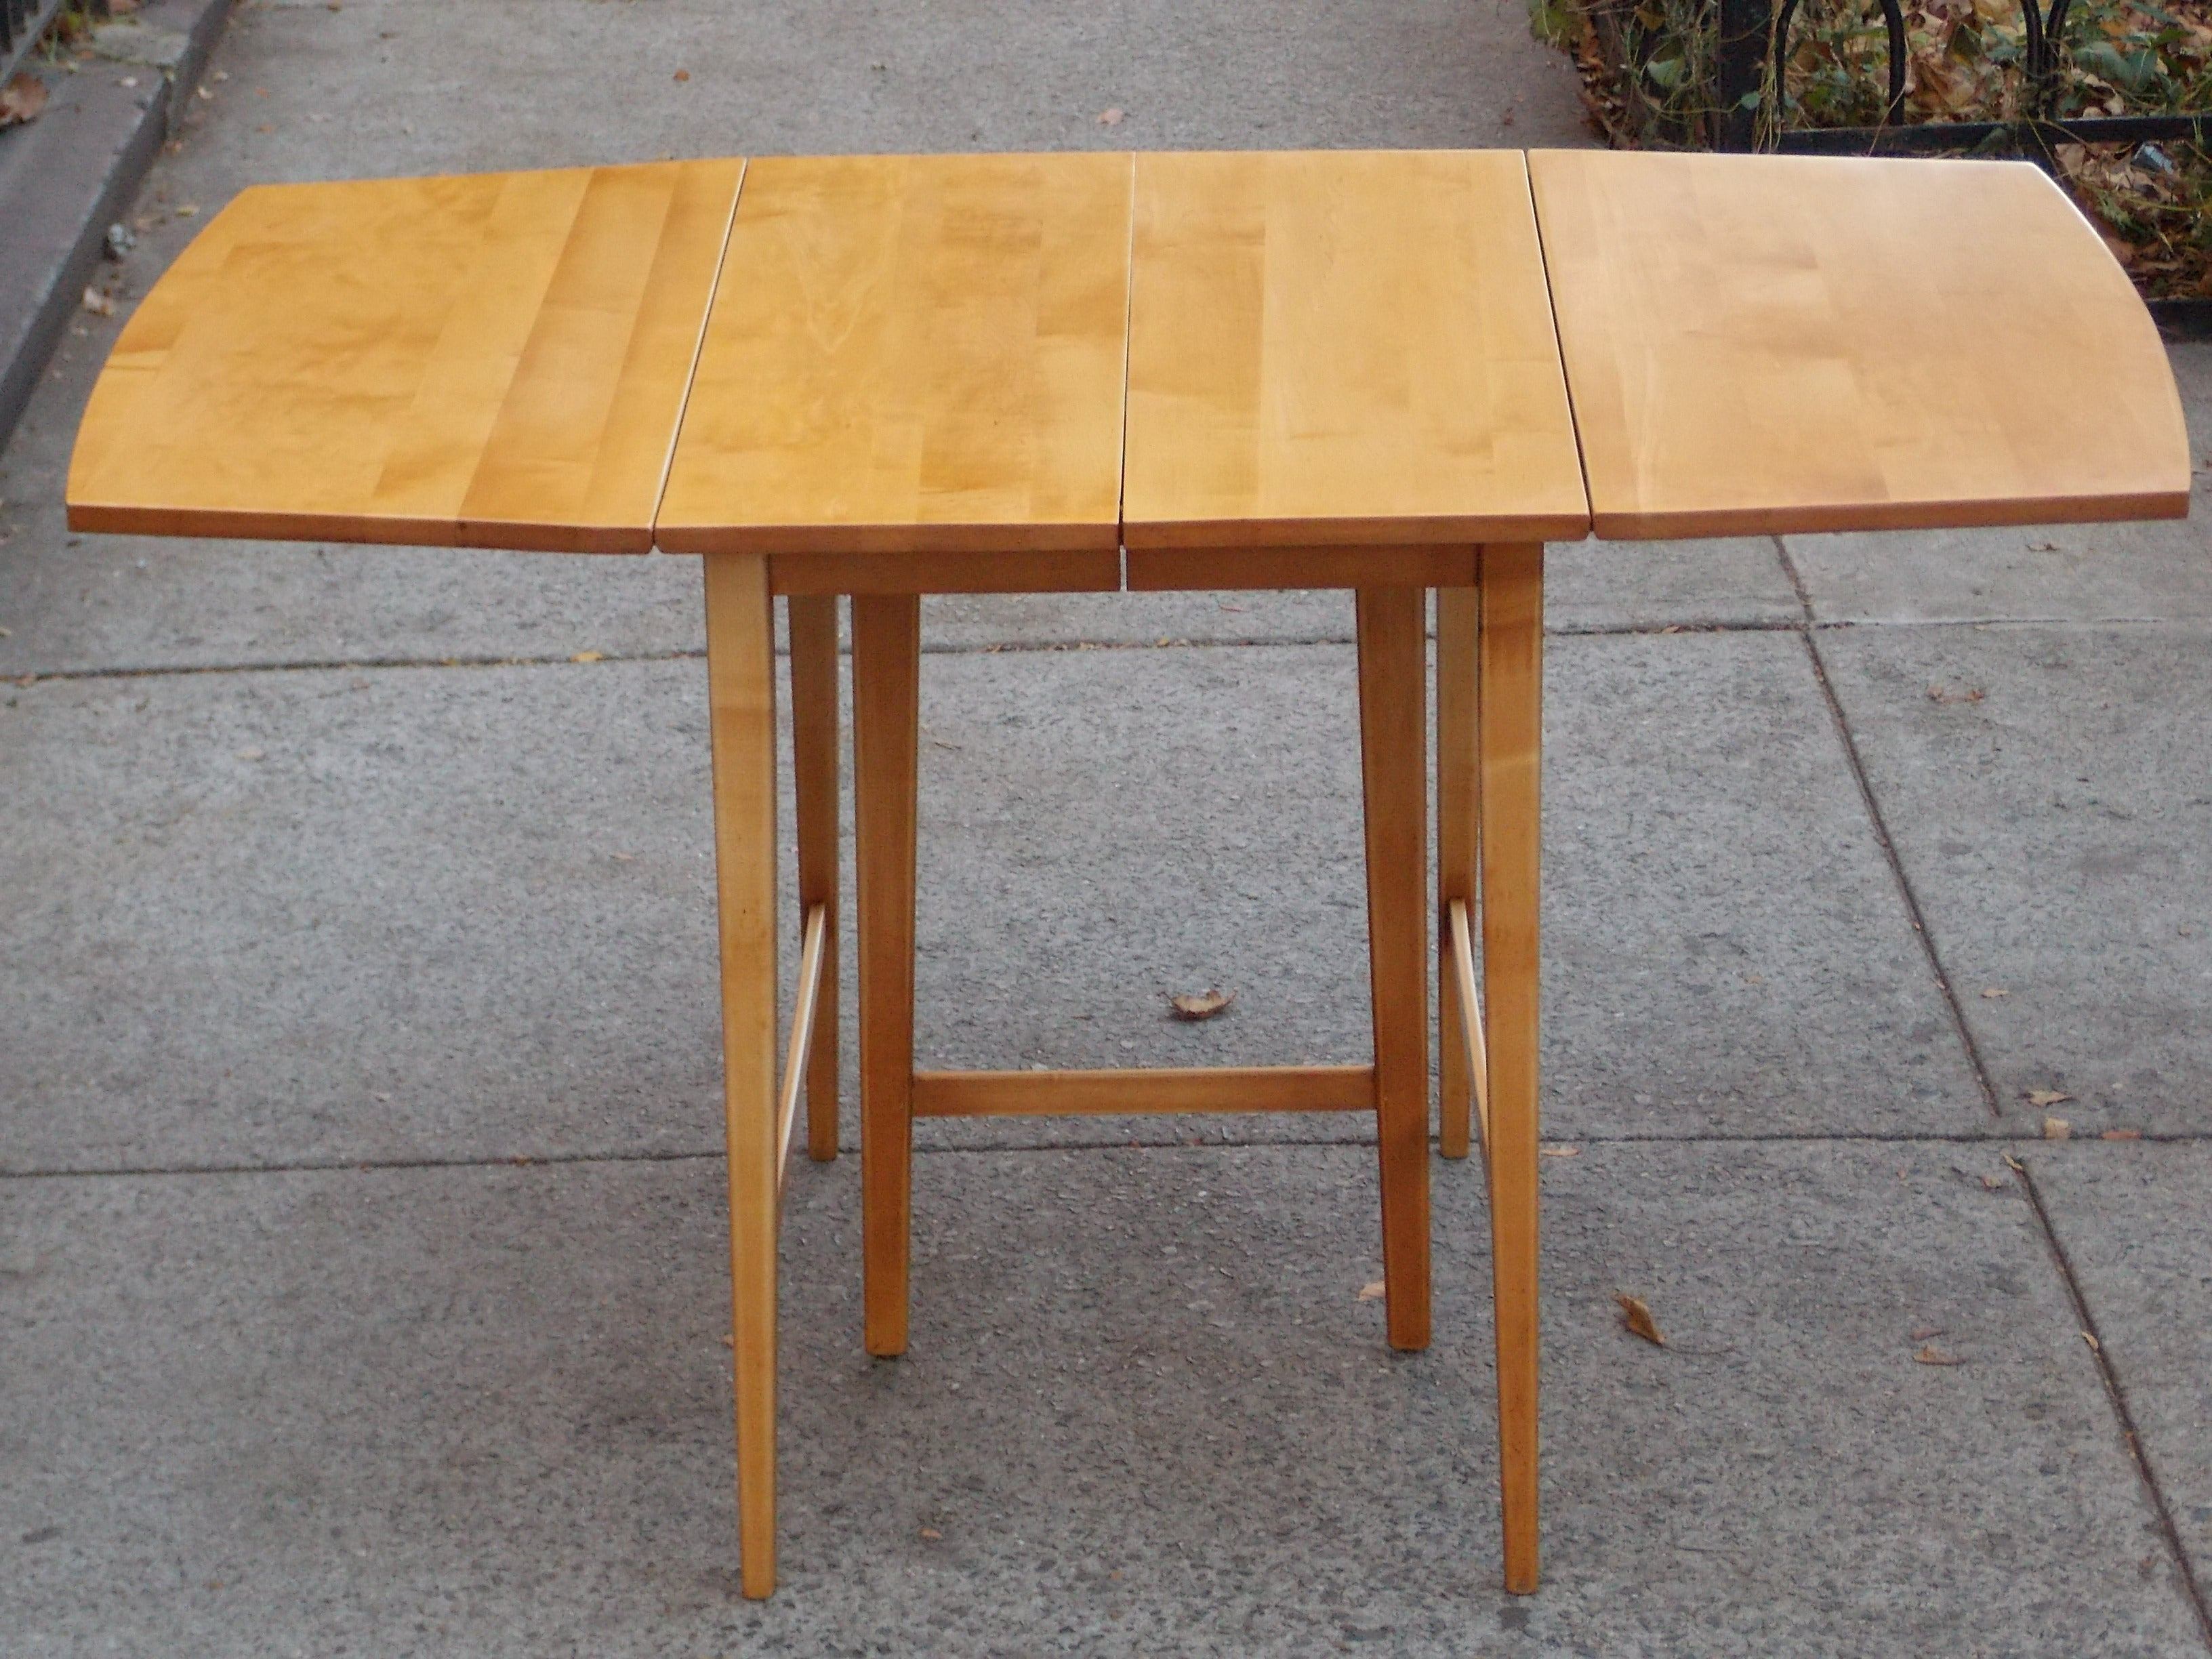 RESTORING A PAUL MCCOBB DROP-LEAF DINING TABLE